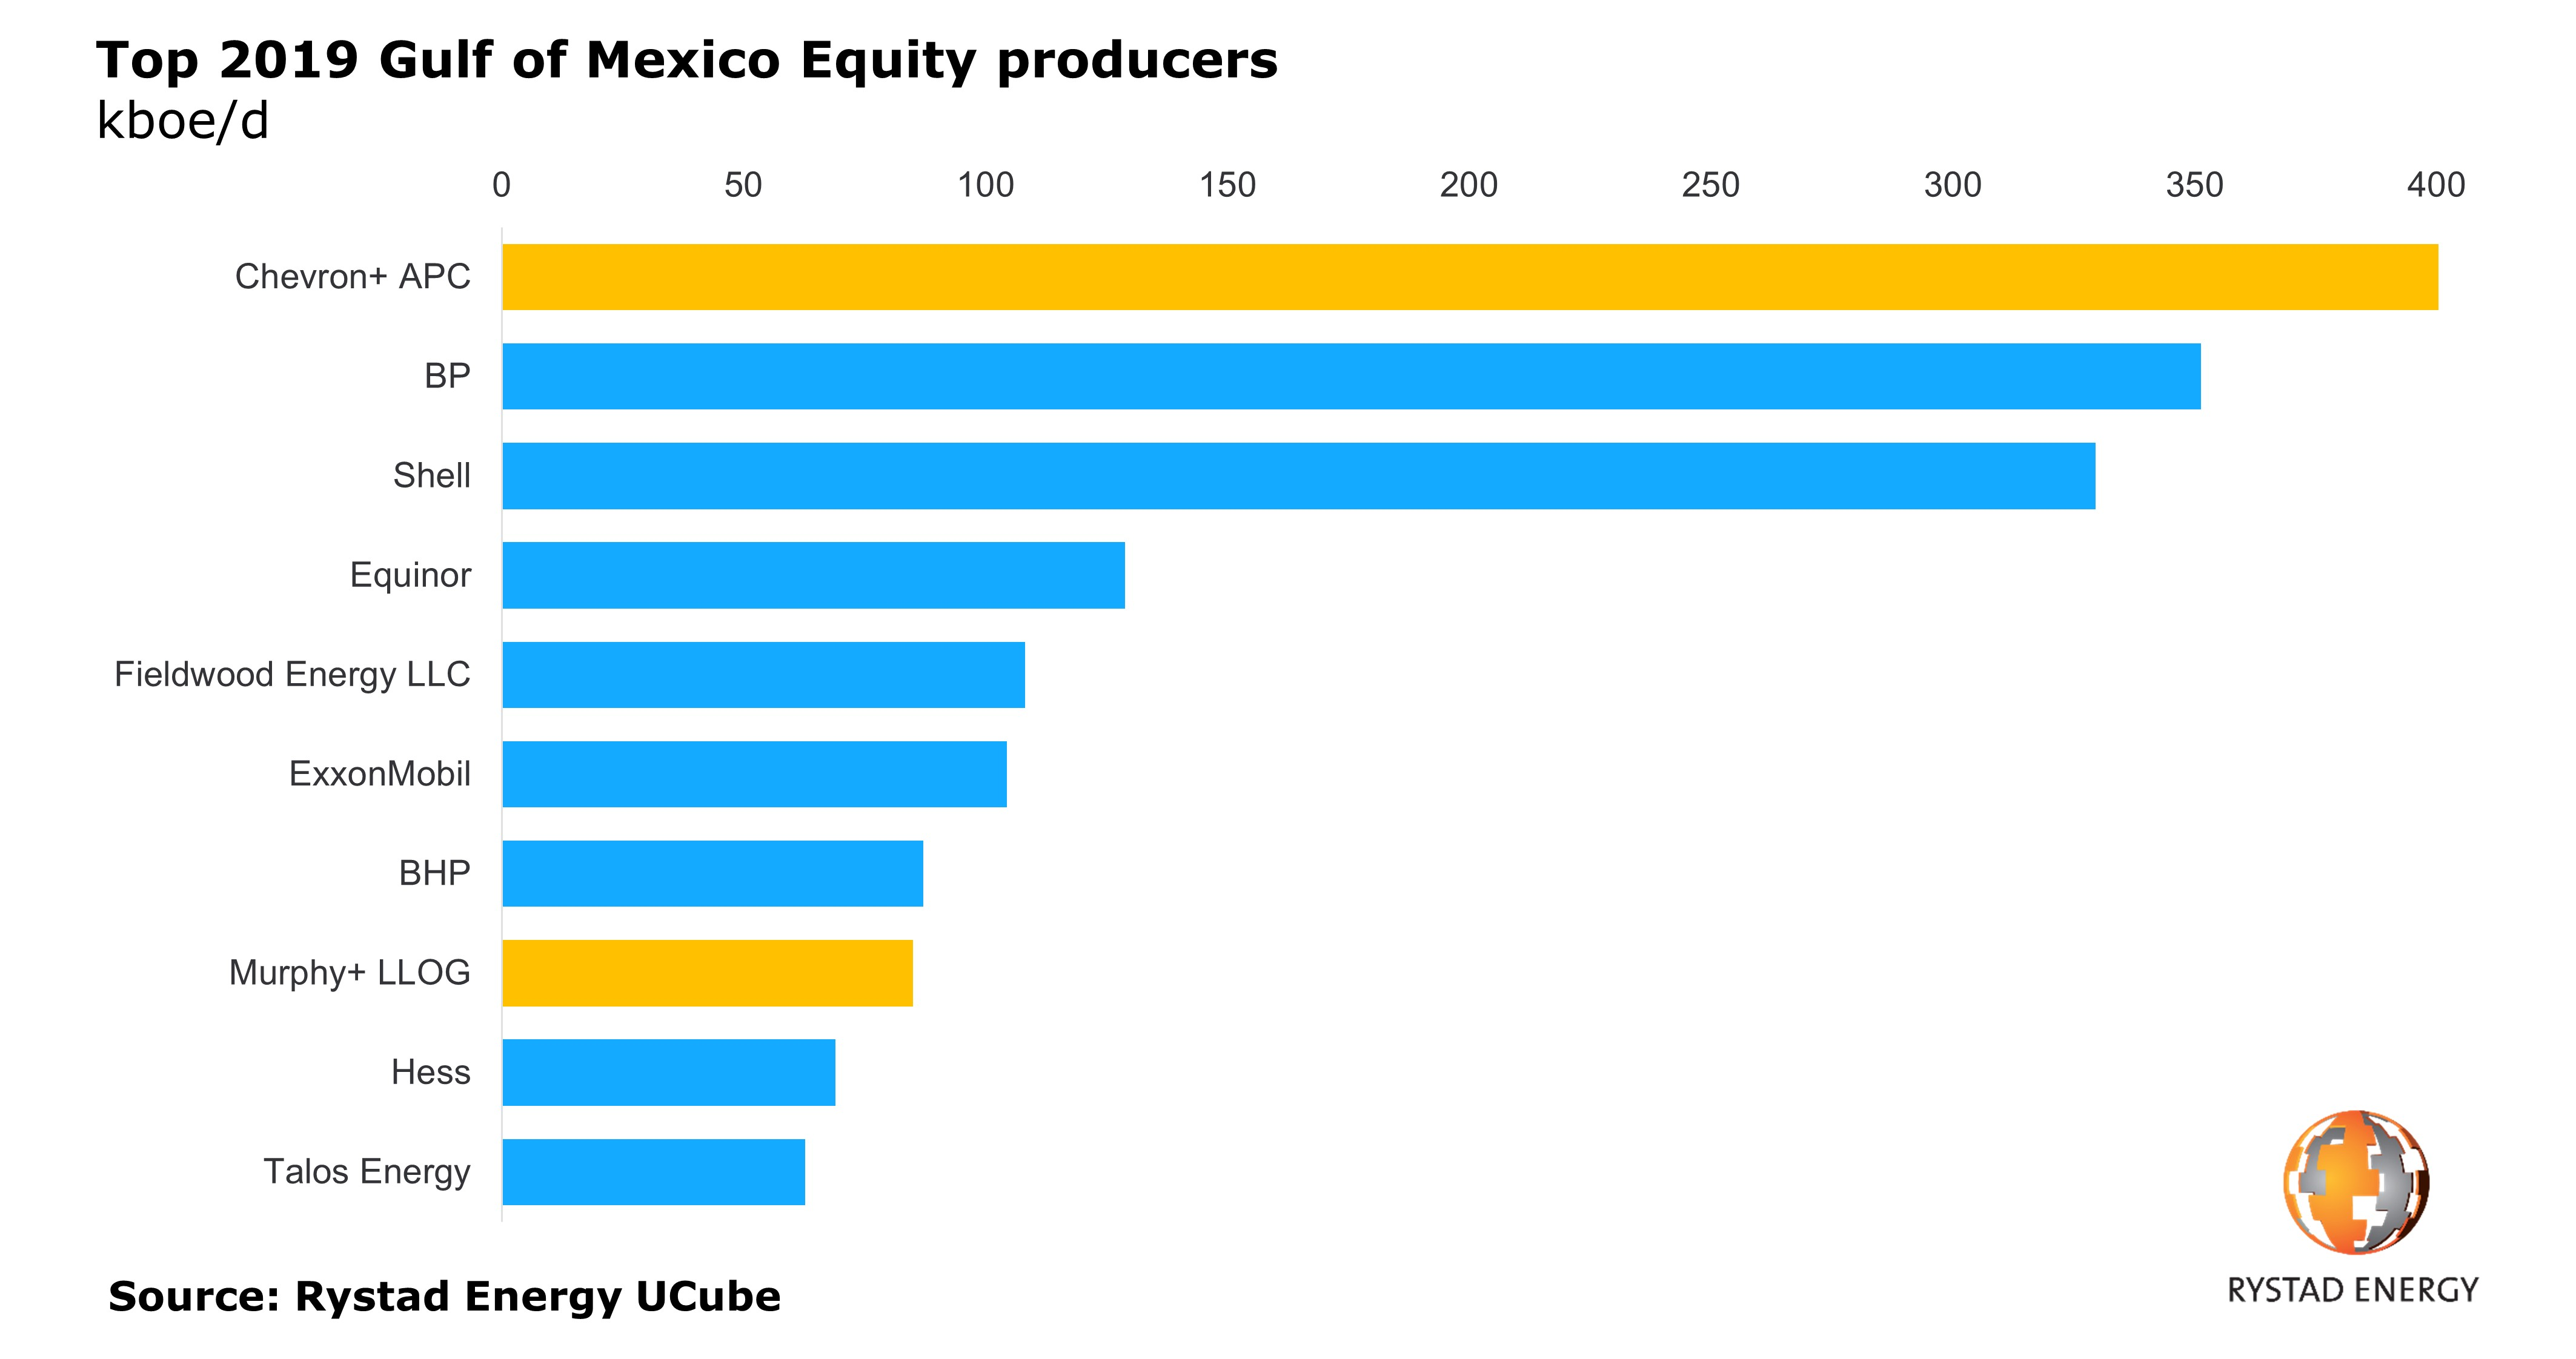 Top 2019 Gulf of Mexico Equity producers